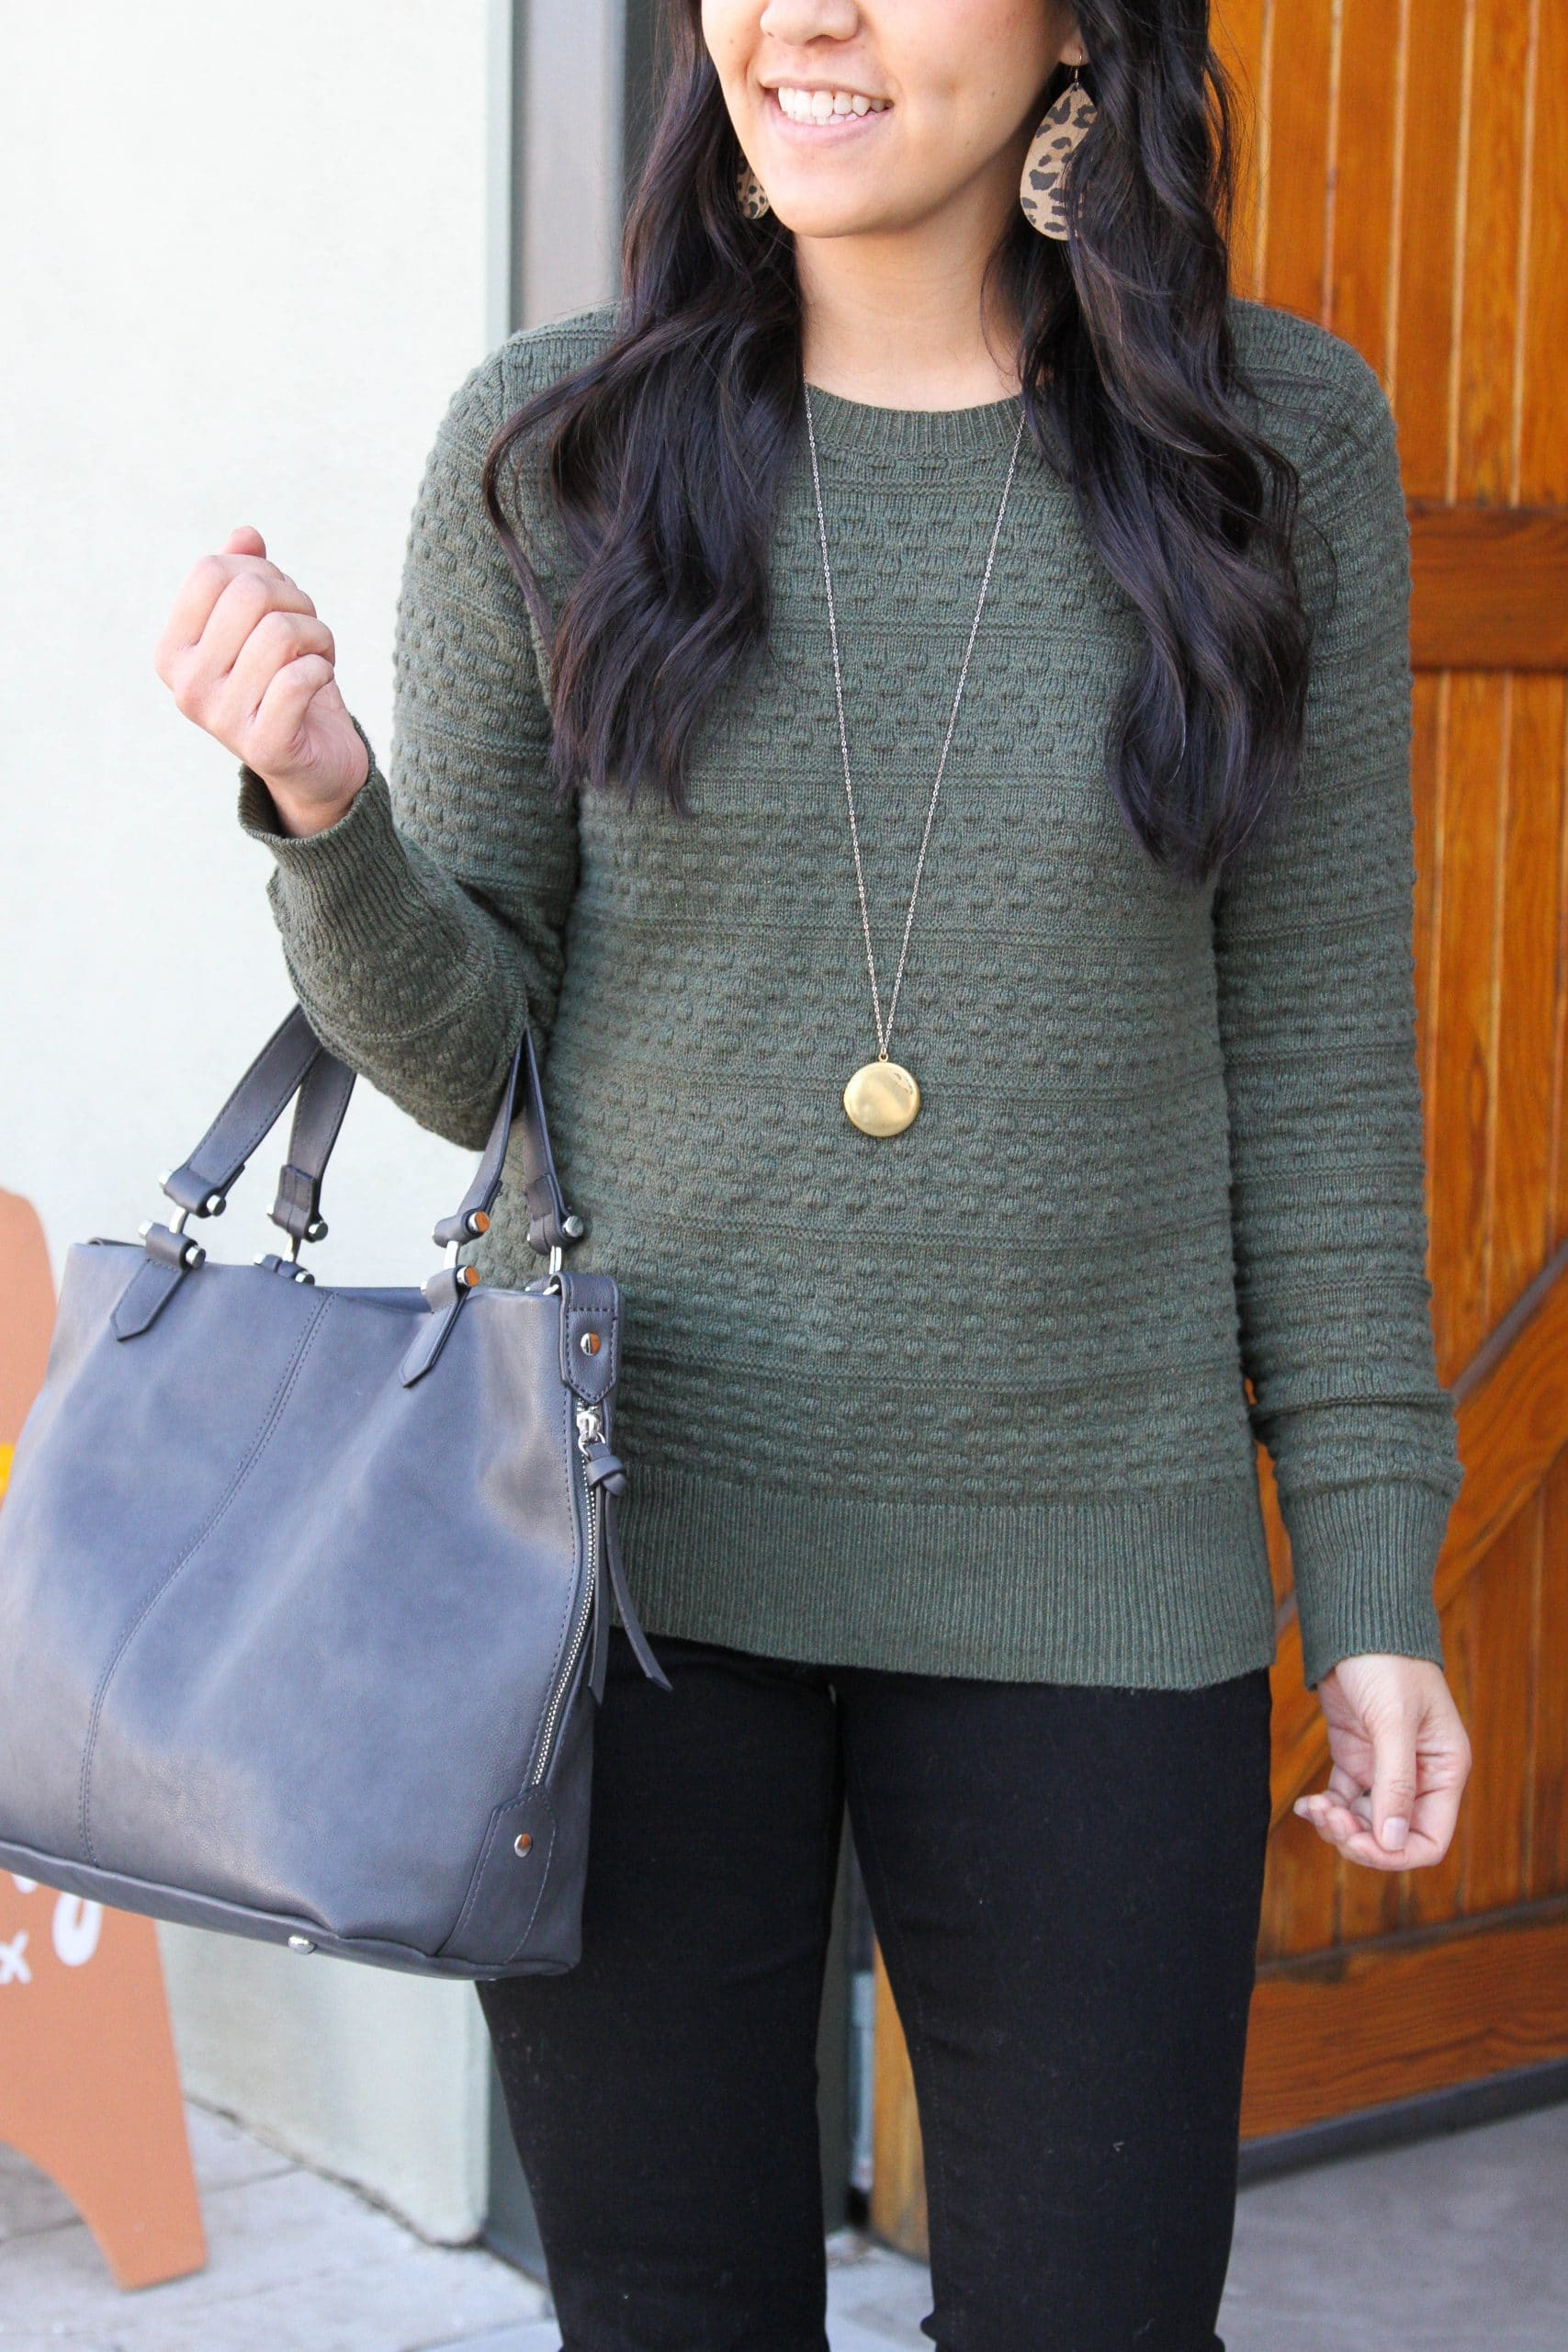 green sweater + black skinny jeans +grey purse + brown booties